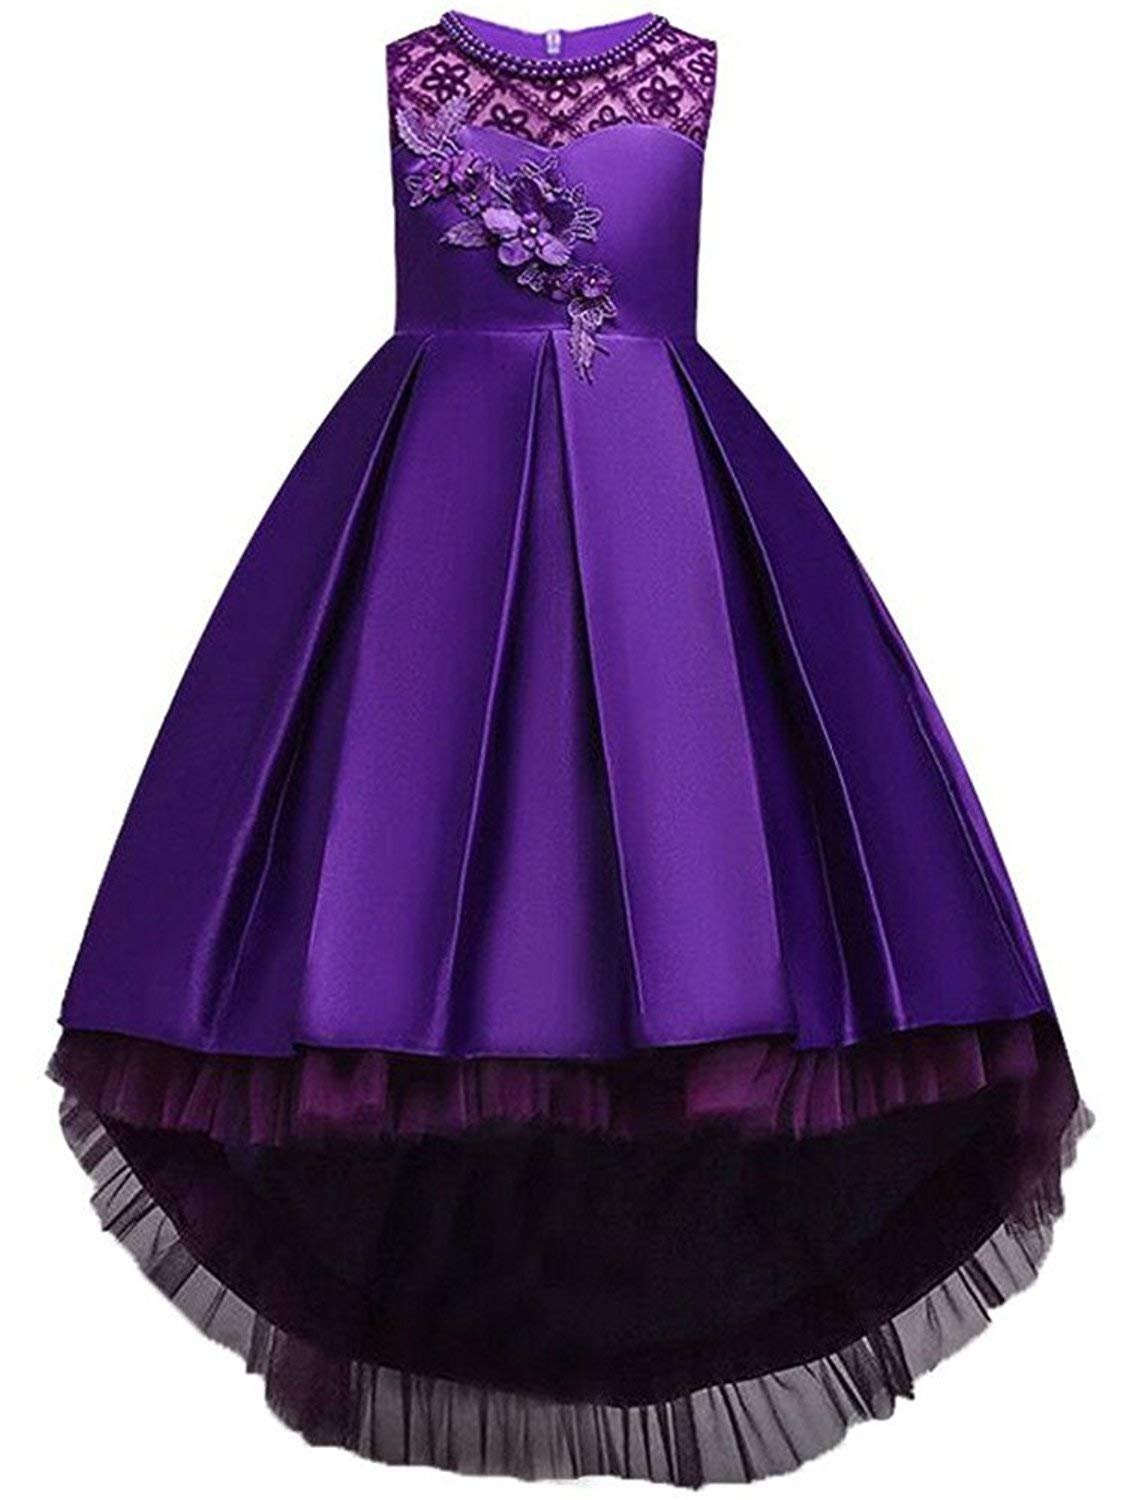 ed05b6b535 Little Girl Pageant Dresses Size 4 Easter Christmas Party Dress for  Toddlers Size 5 High Low Sleeveless Special Occasion Dress Purple Prom  Bridesmaid ...